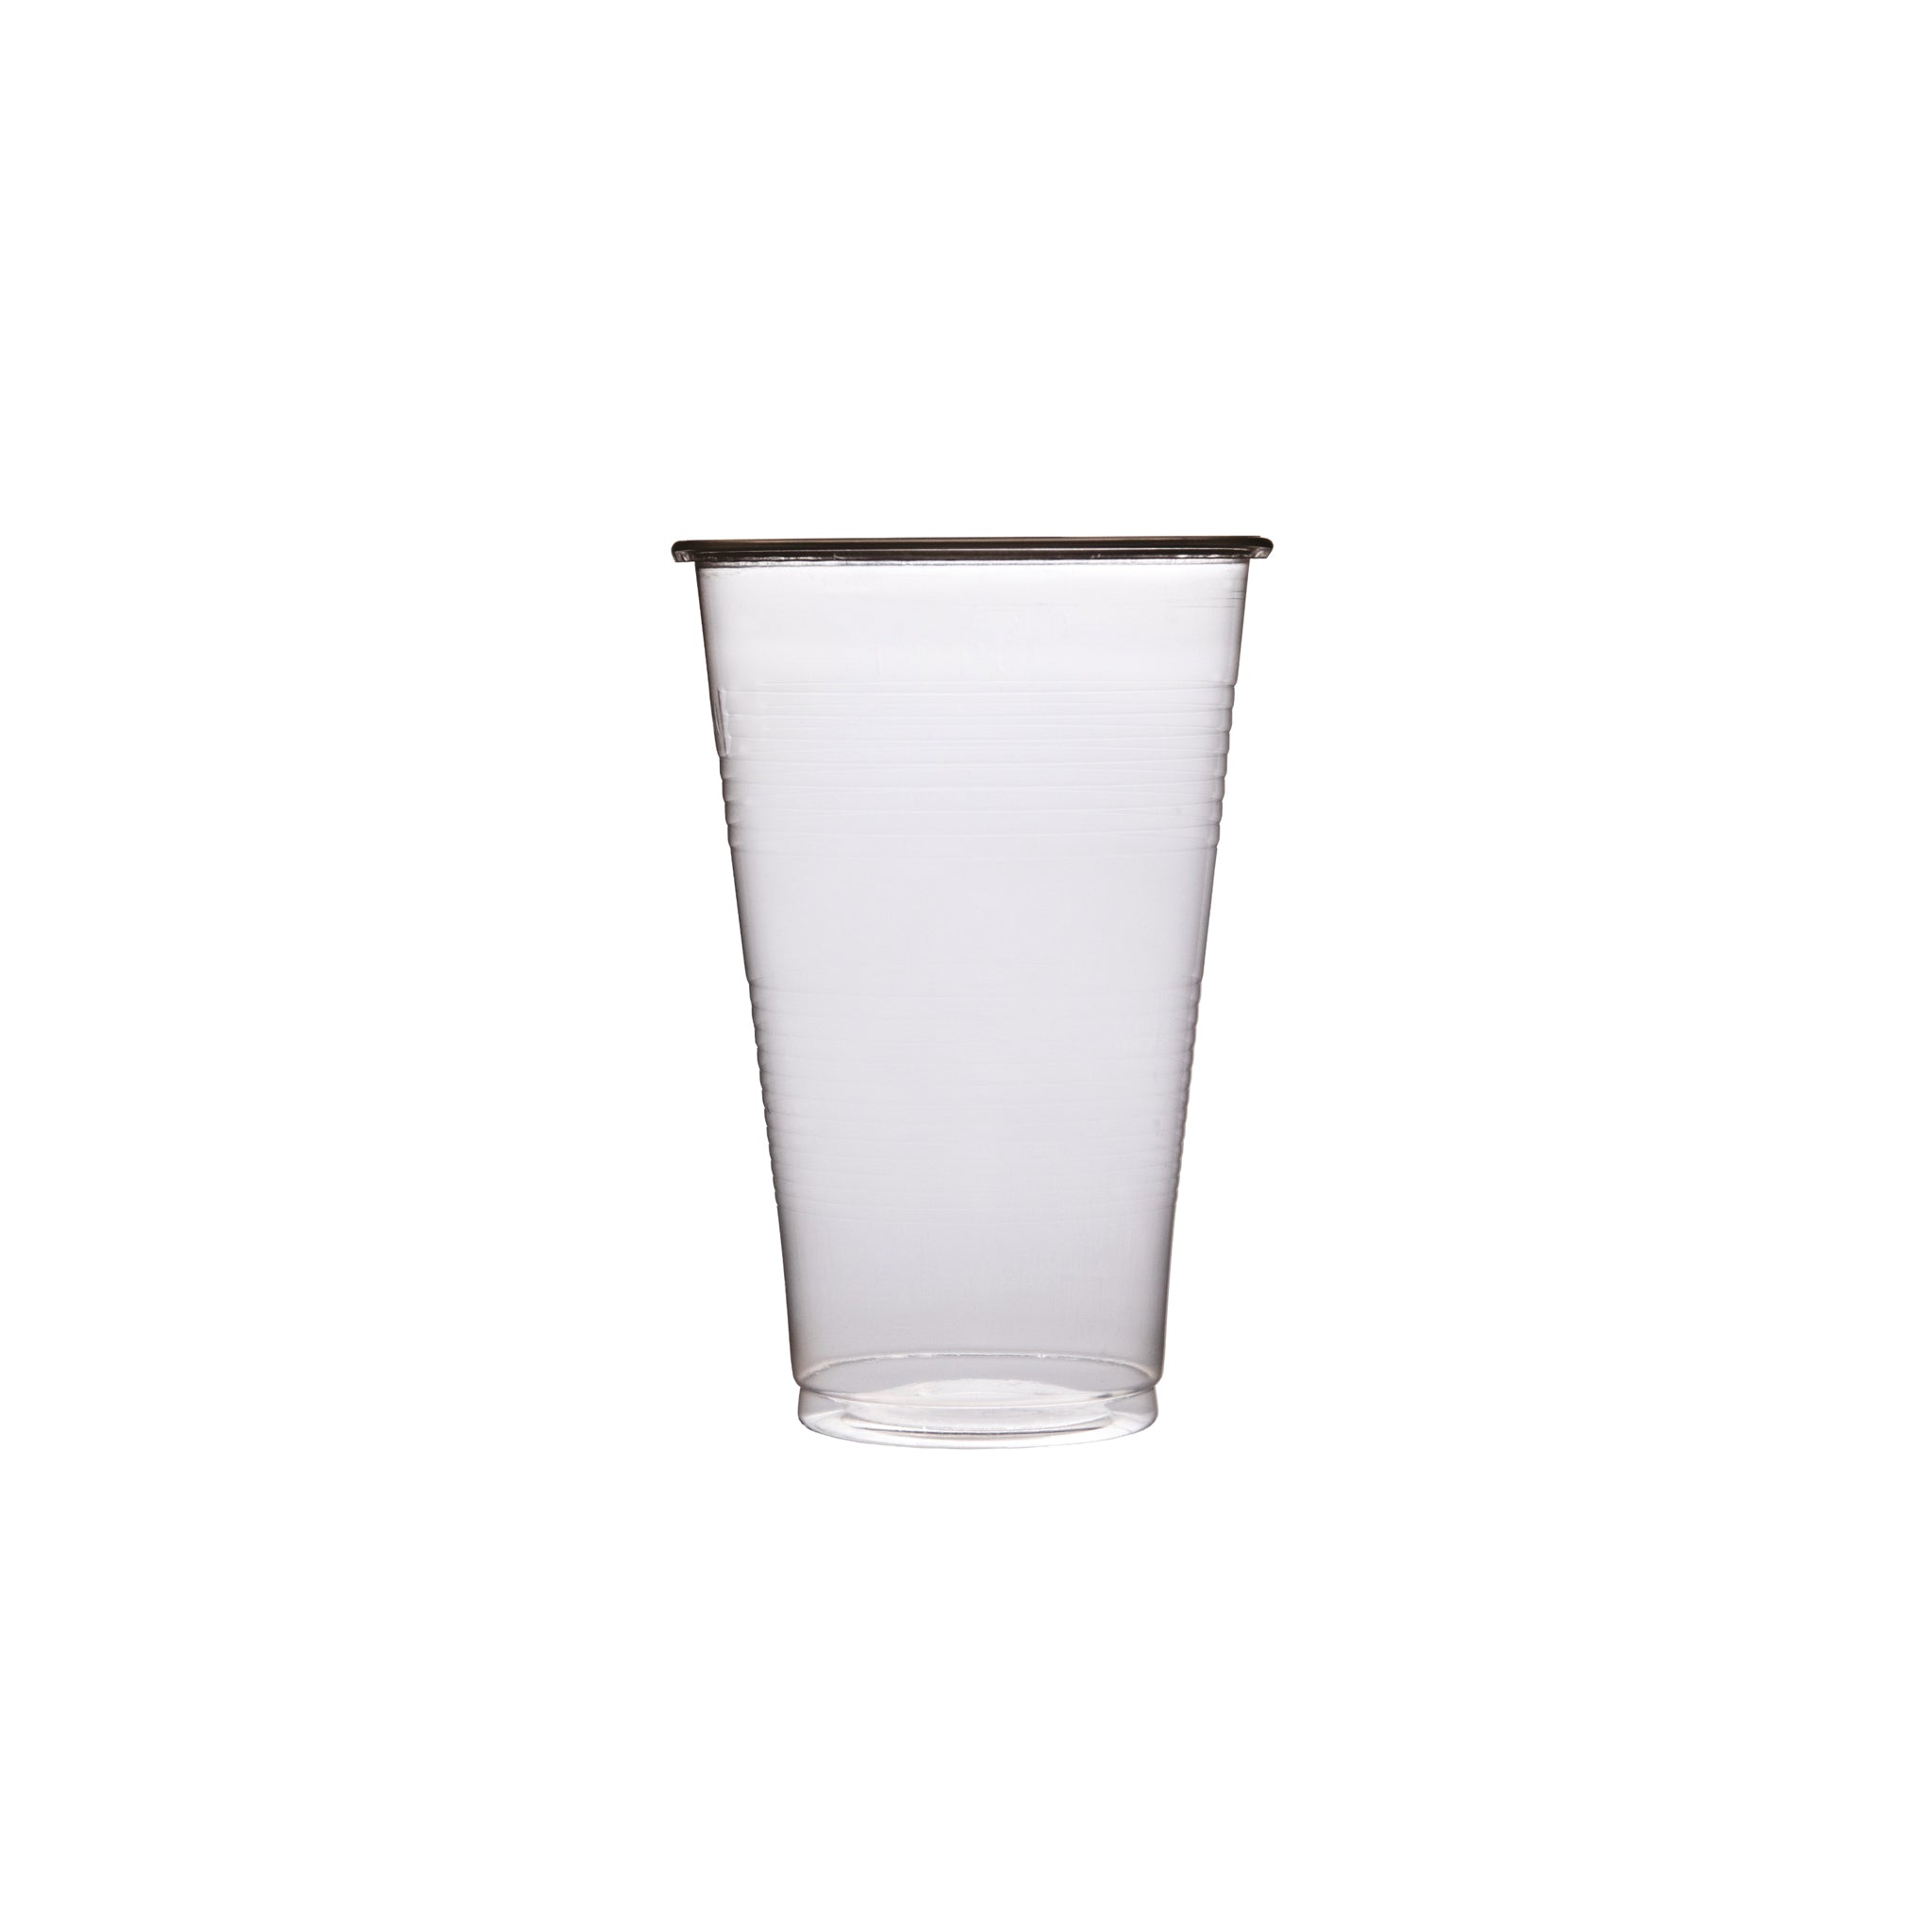 DISPOSABLE HALF PINT PLASTIC CUP 25